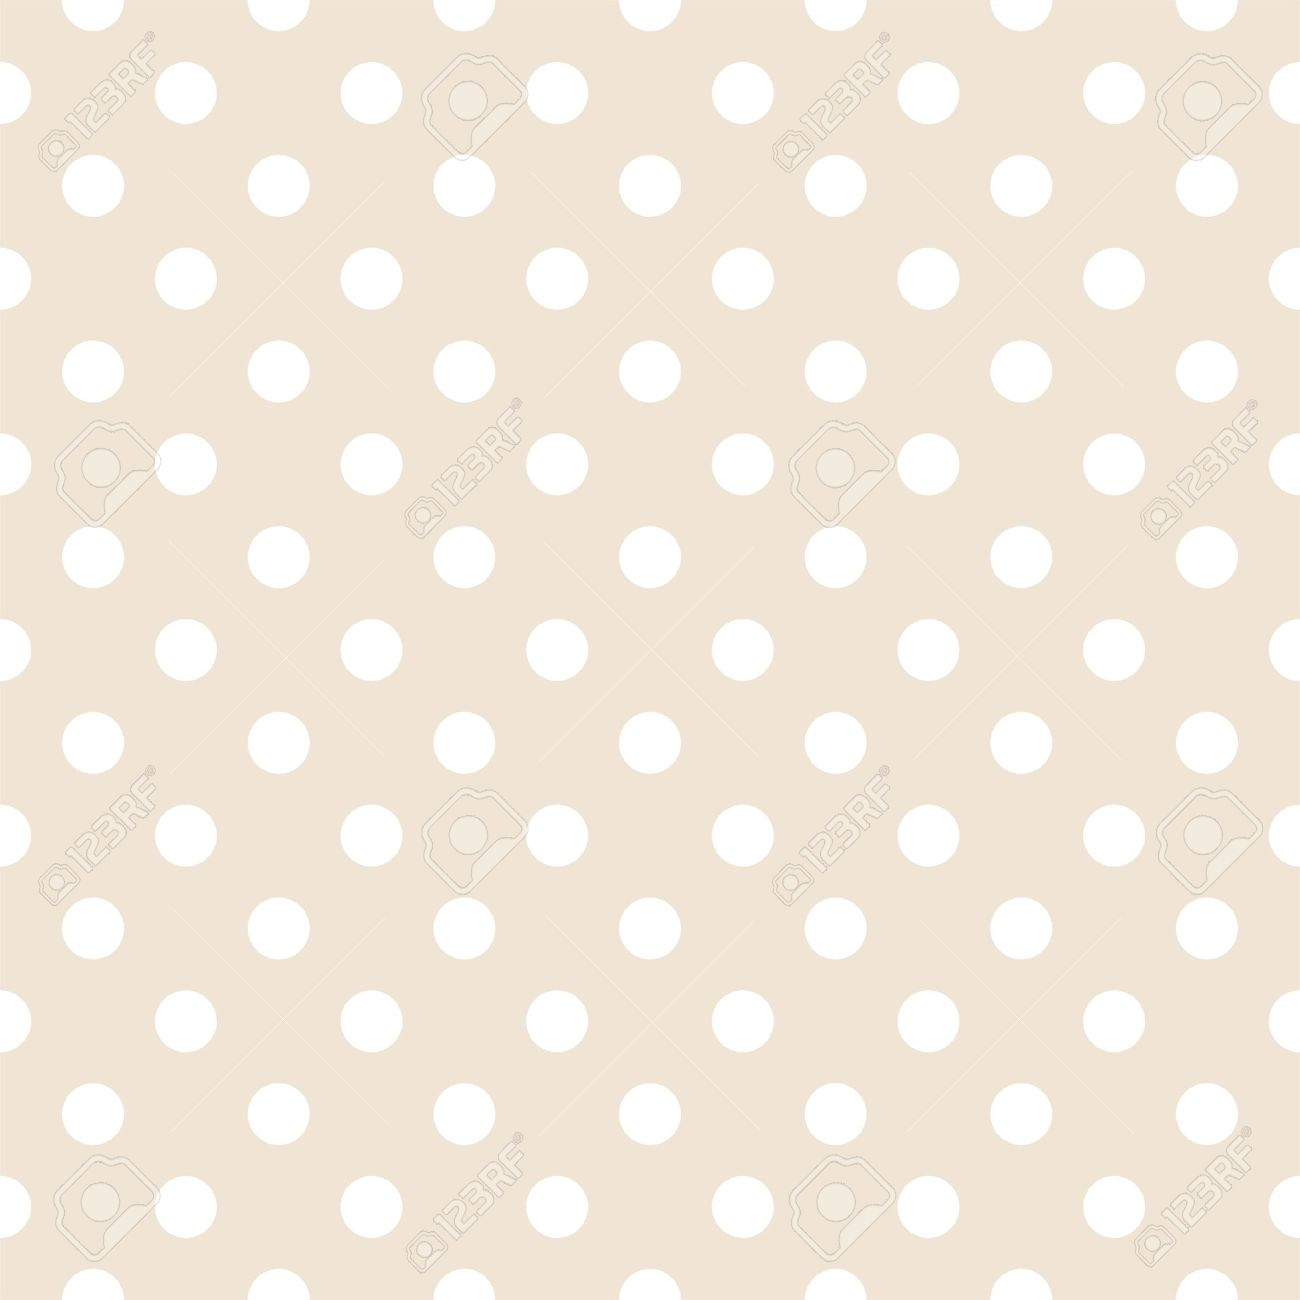 White polka dots on light beige neutral background retro white polka dots on light beige neutral background retro seamless vector pattern for backgrounds voltagebd Images